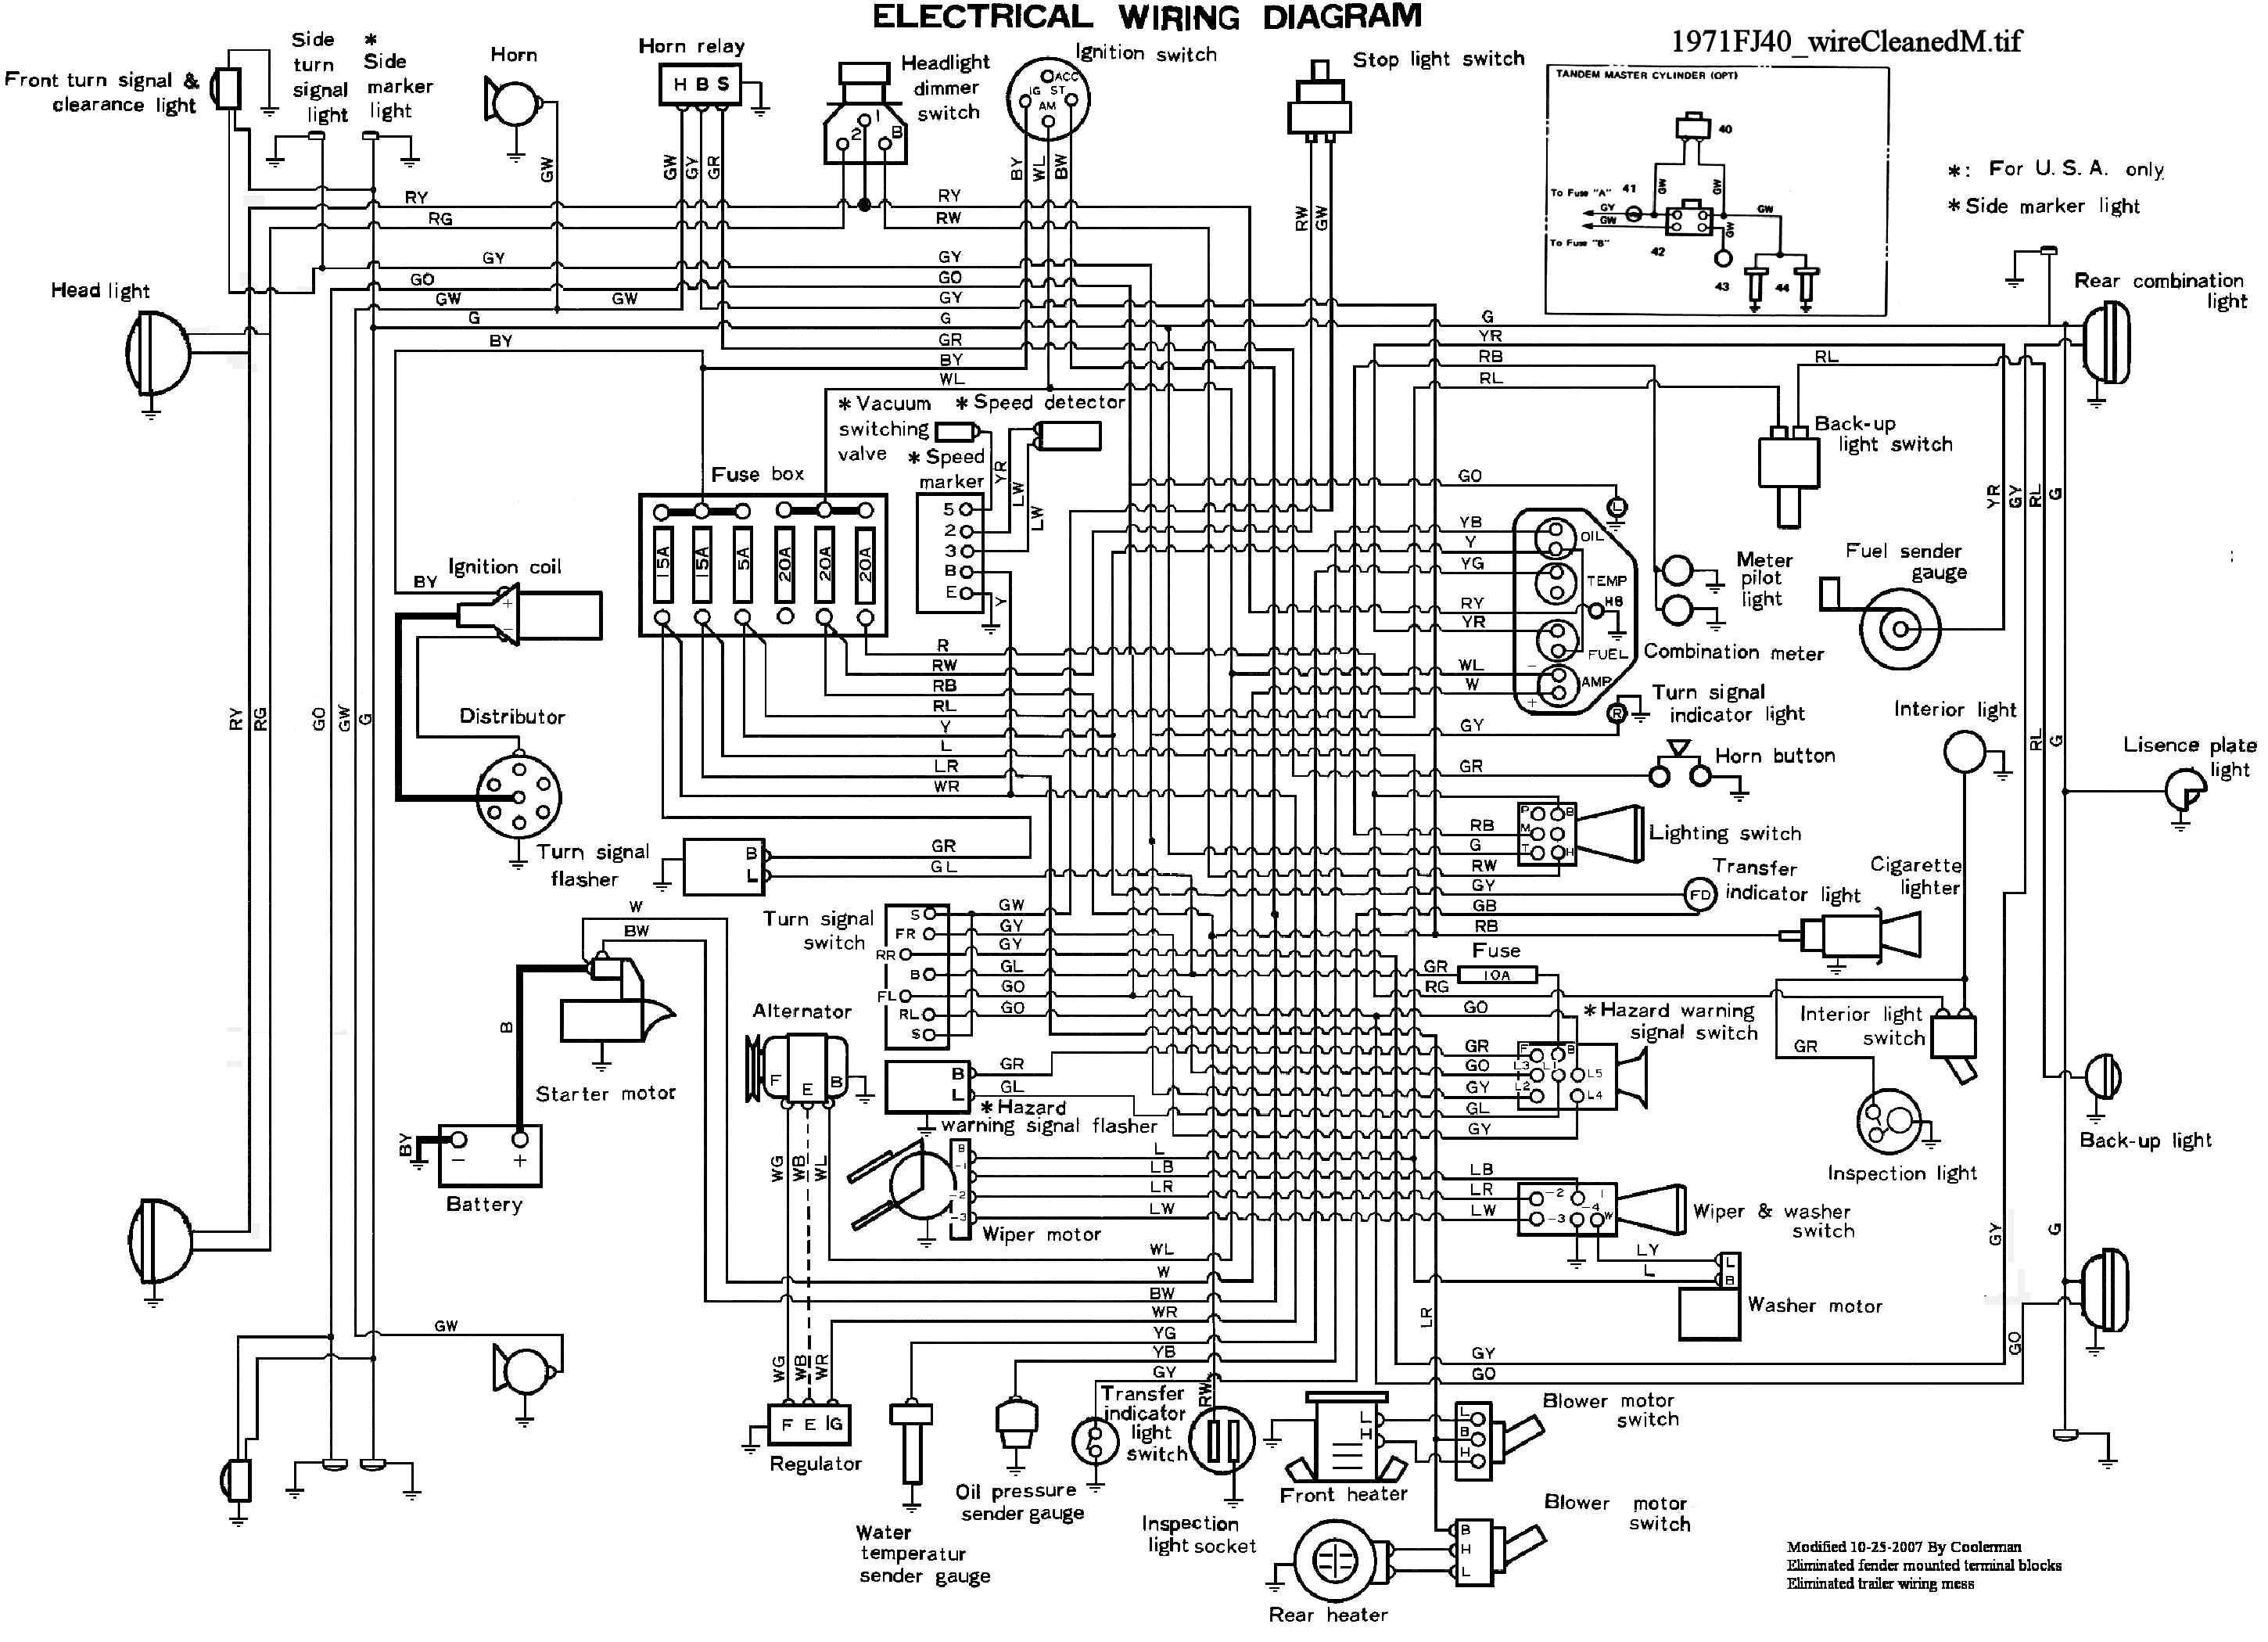 71fj40_wireCleanedM vdj79 wiring diagram outlet wiring \u2022 wiring diagrams j squared co Chevy Tail Light Wiring Diagram at edmiracle.co